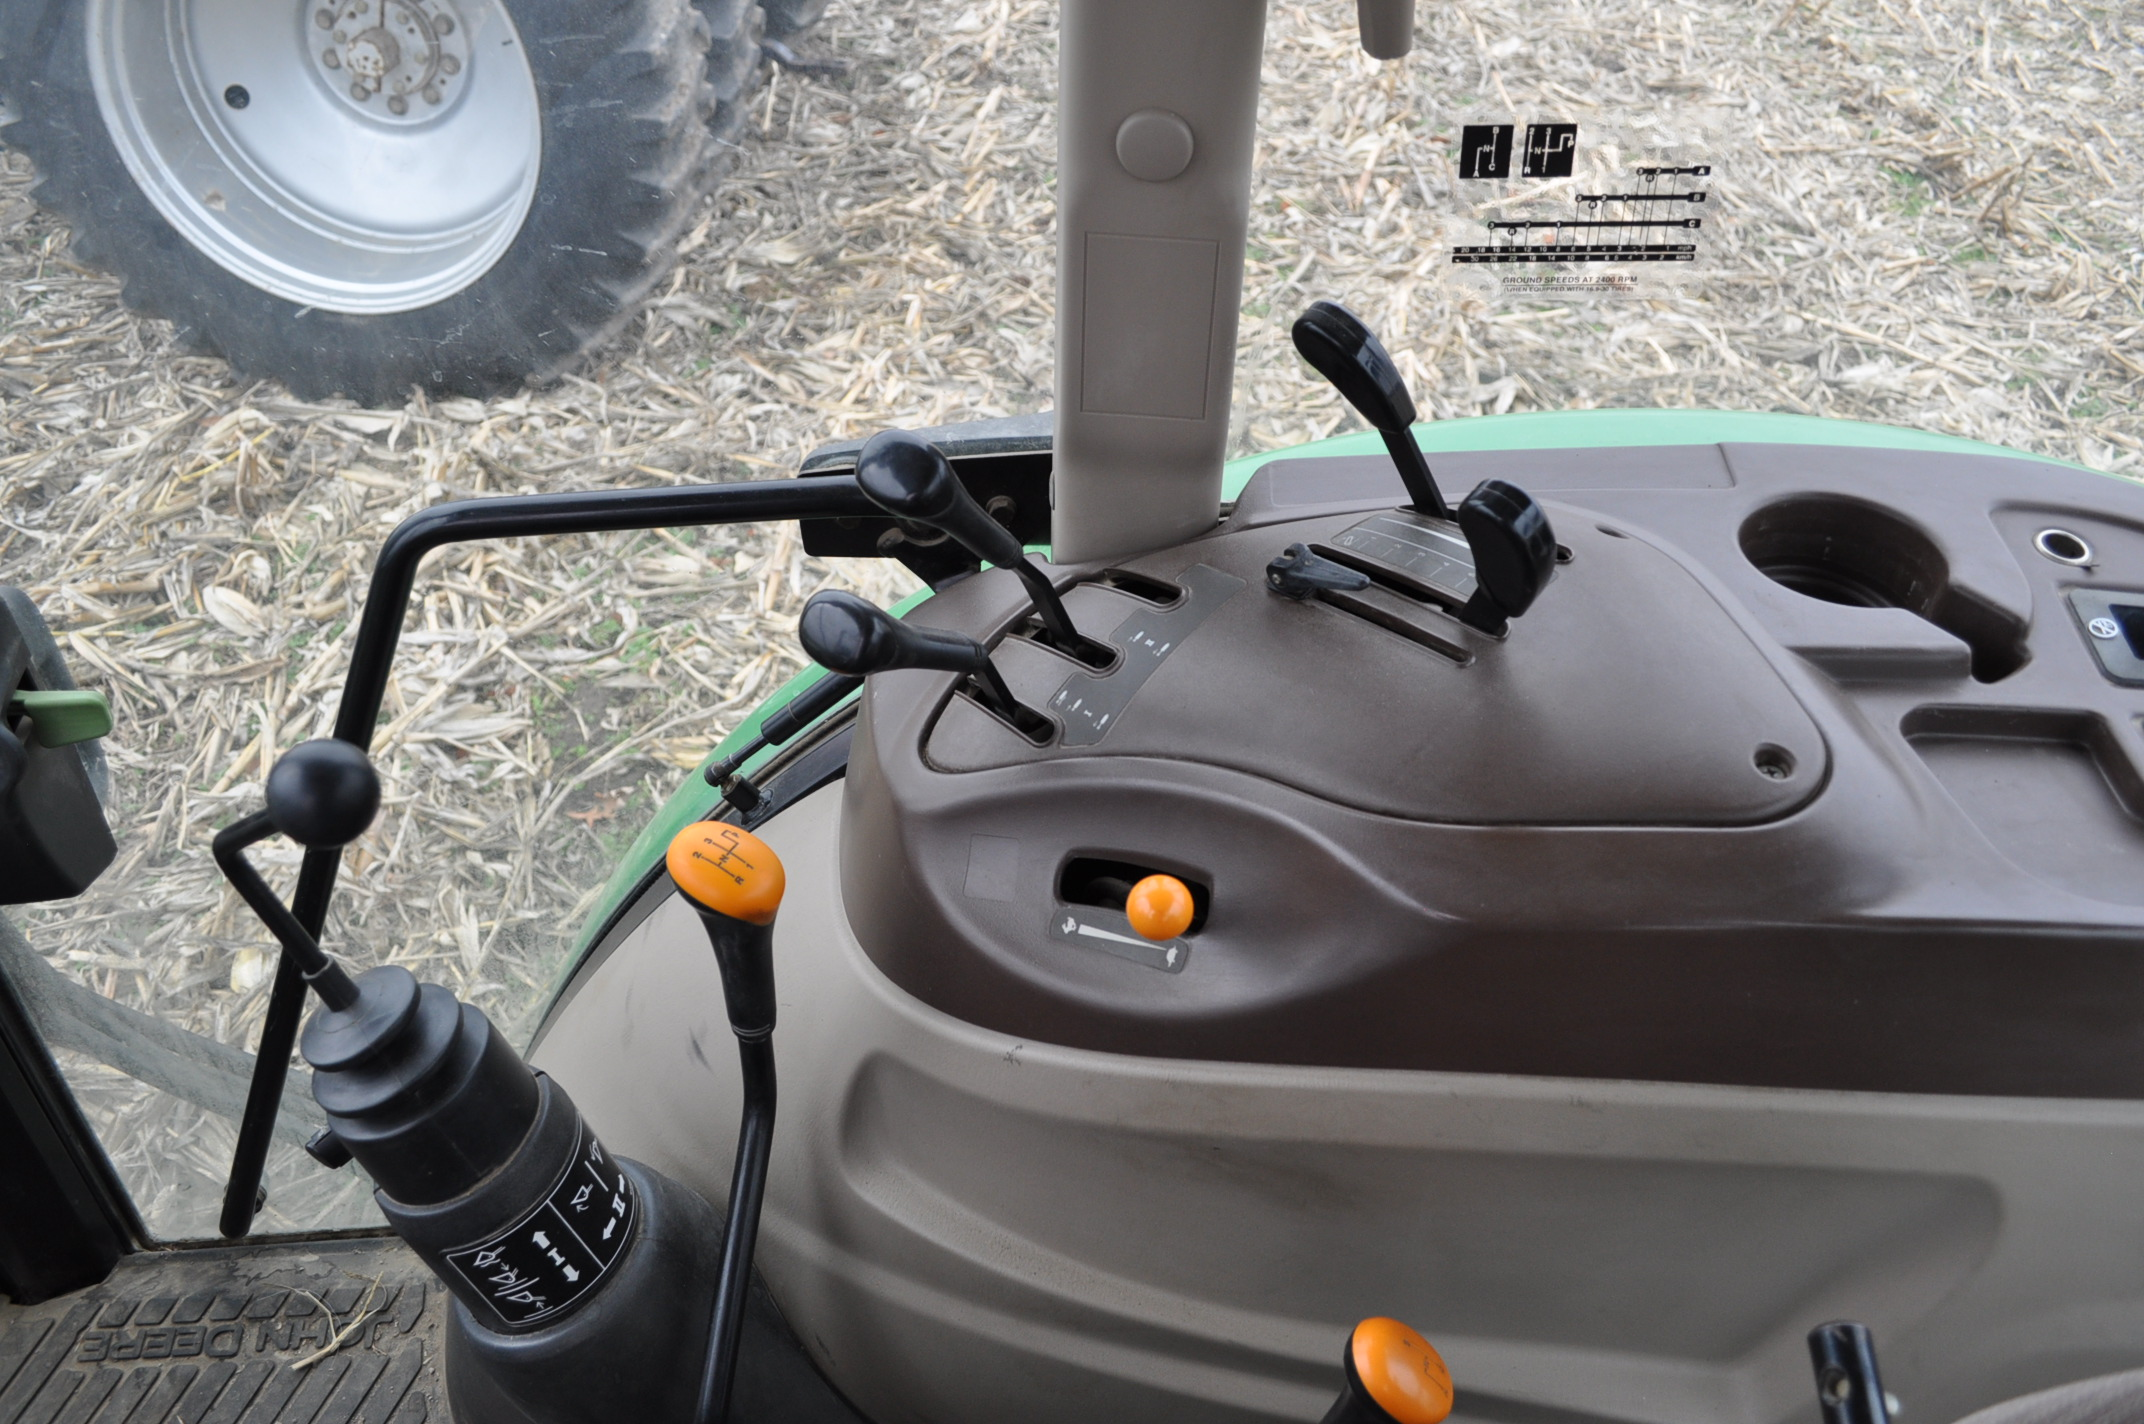 John Deere 5520 utility tractor, MFWD, 18.4 R 30 rear, 12.4-24 front, rear wheel wts, 2 hyd remotes, - Image 22 of 26